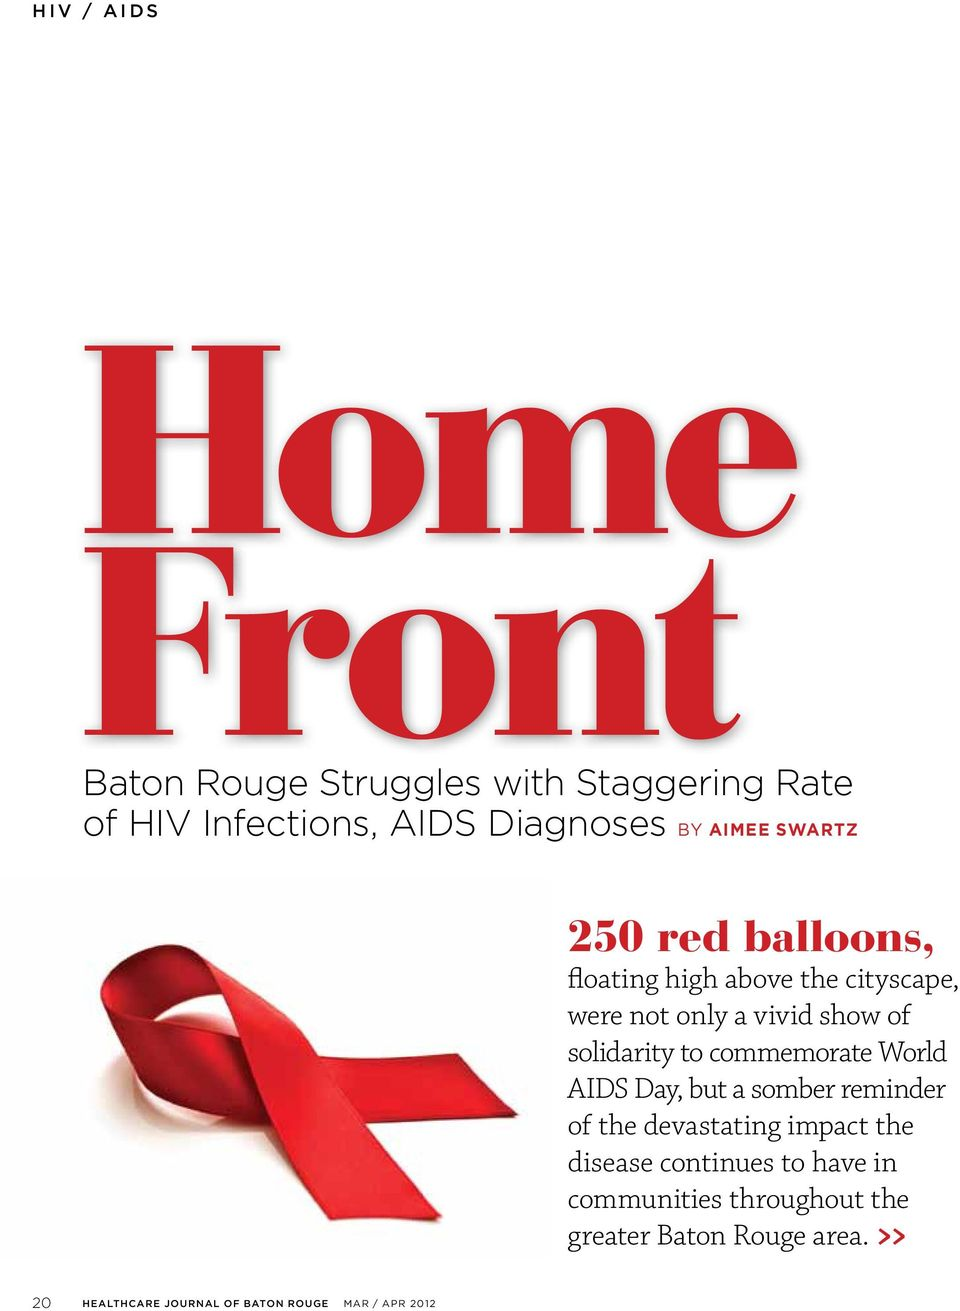 to commemorate World AIDS Day, but a somber reminder of the devastating impact the disease continues to